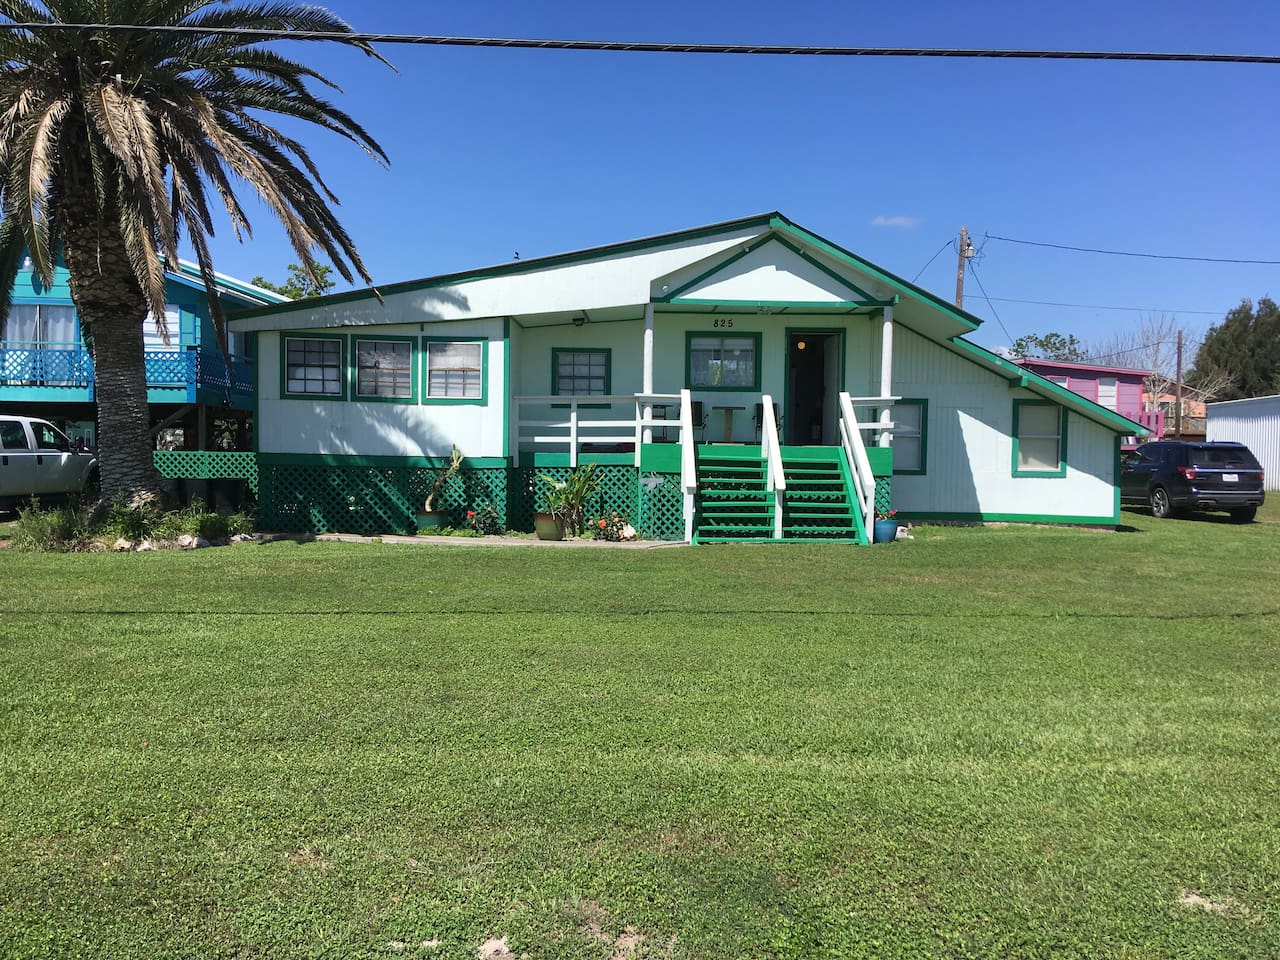 """Beautiful, roomy """"Old Shell Shop"""" has a tropical, bright, open feeling. Completely Furnished with Dish TV, Wi-Fi, stove, two microwaves, washer and dryer. Three blocks from beautiful Magnolia Beach and the popular """"Crabbin Bridge"""""""